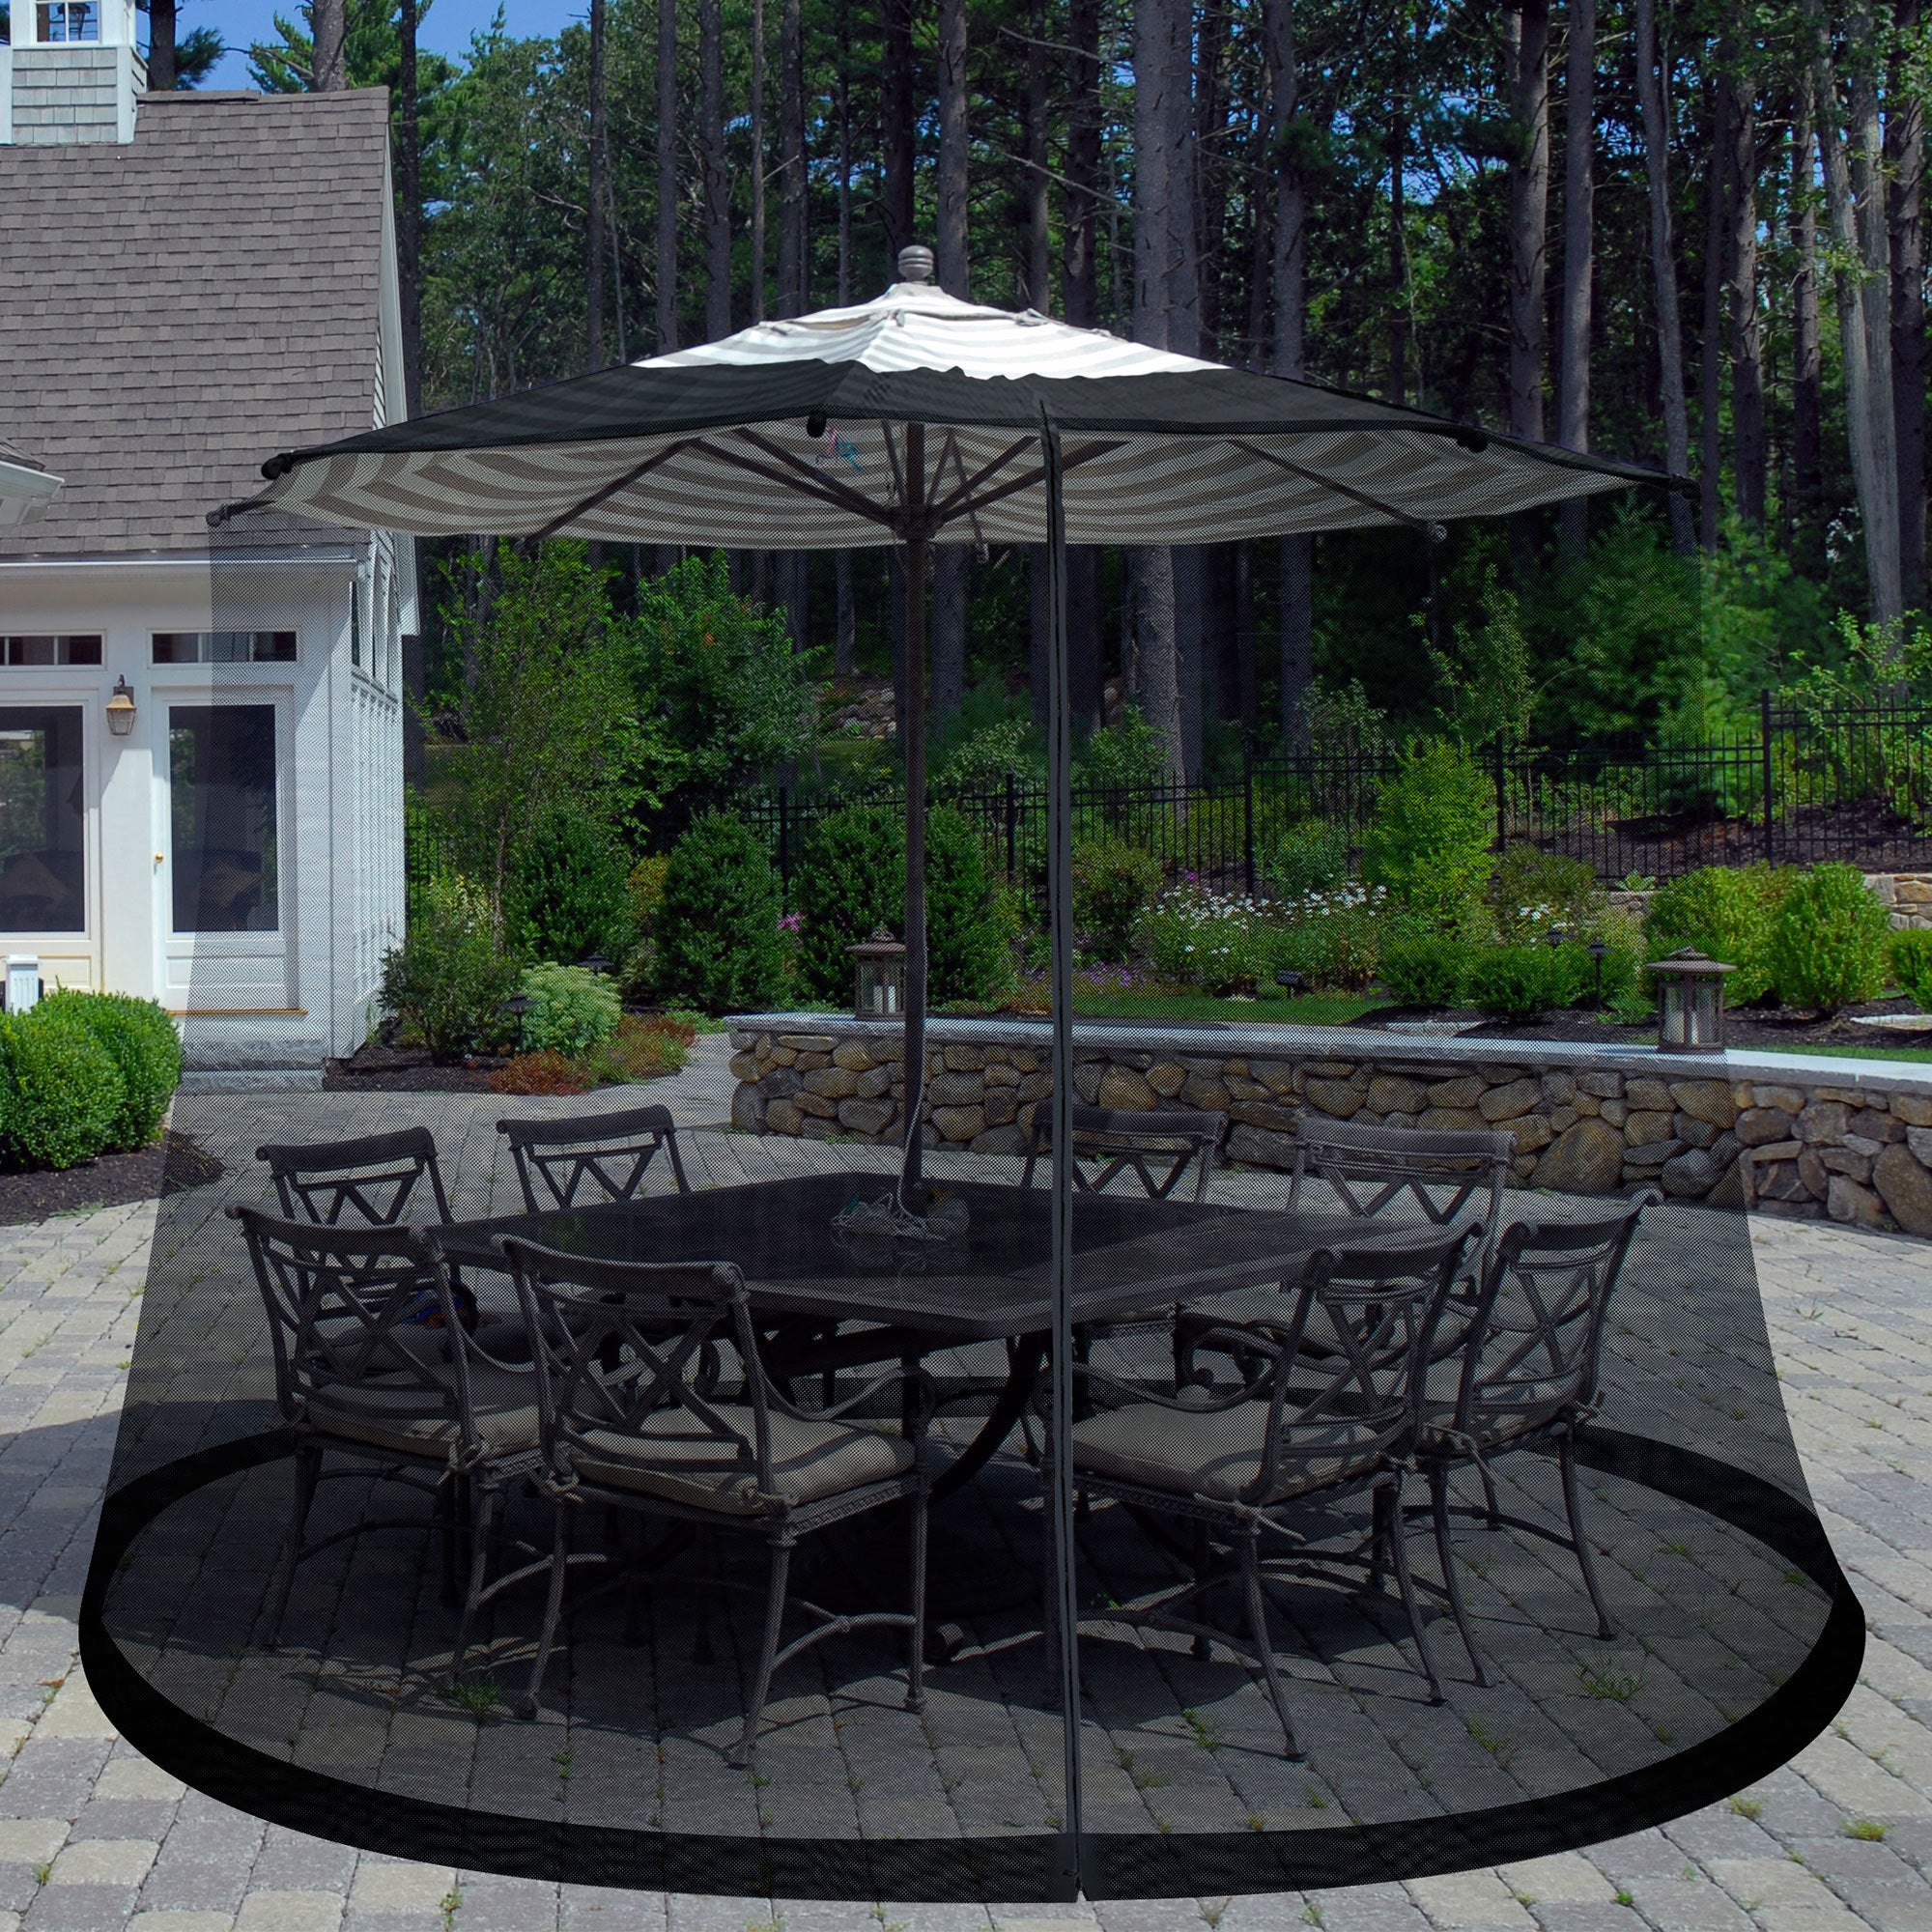 Pure Garden Bug Screen For 7 5 Foot Outdoor Umbrella Free Shipping On Orders Over 45 9207055